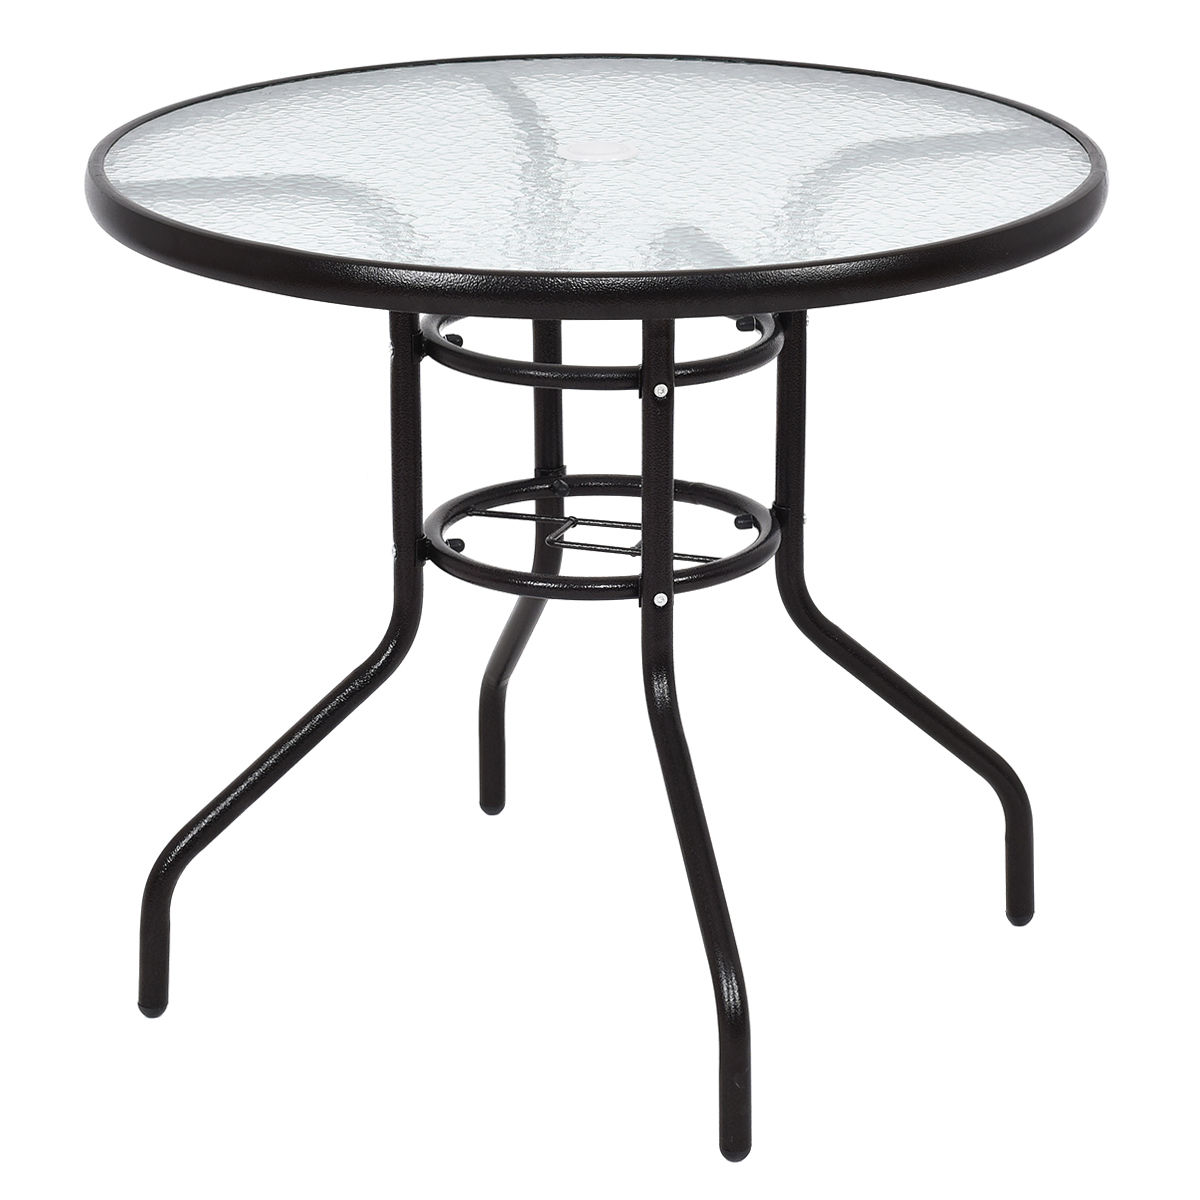 Costway 31 1/2u0027u0027 Patio Round Table Steel Frame Dining Table Patio Furniture